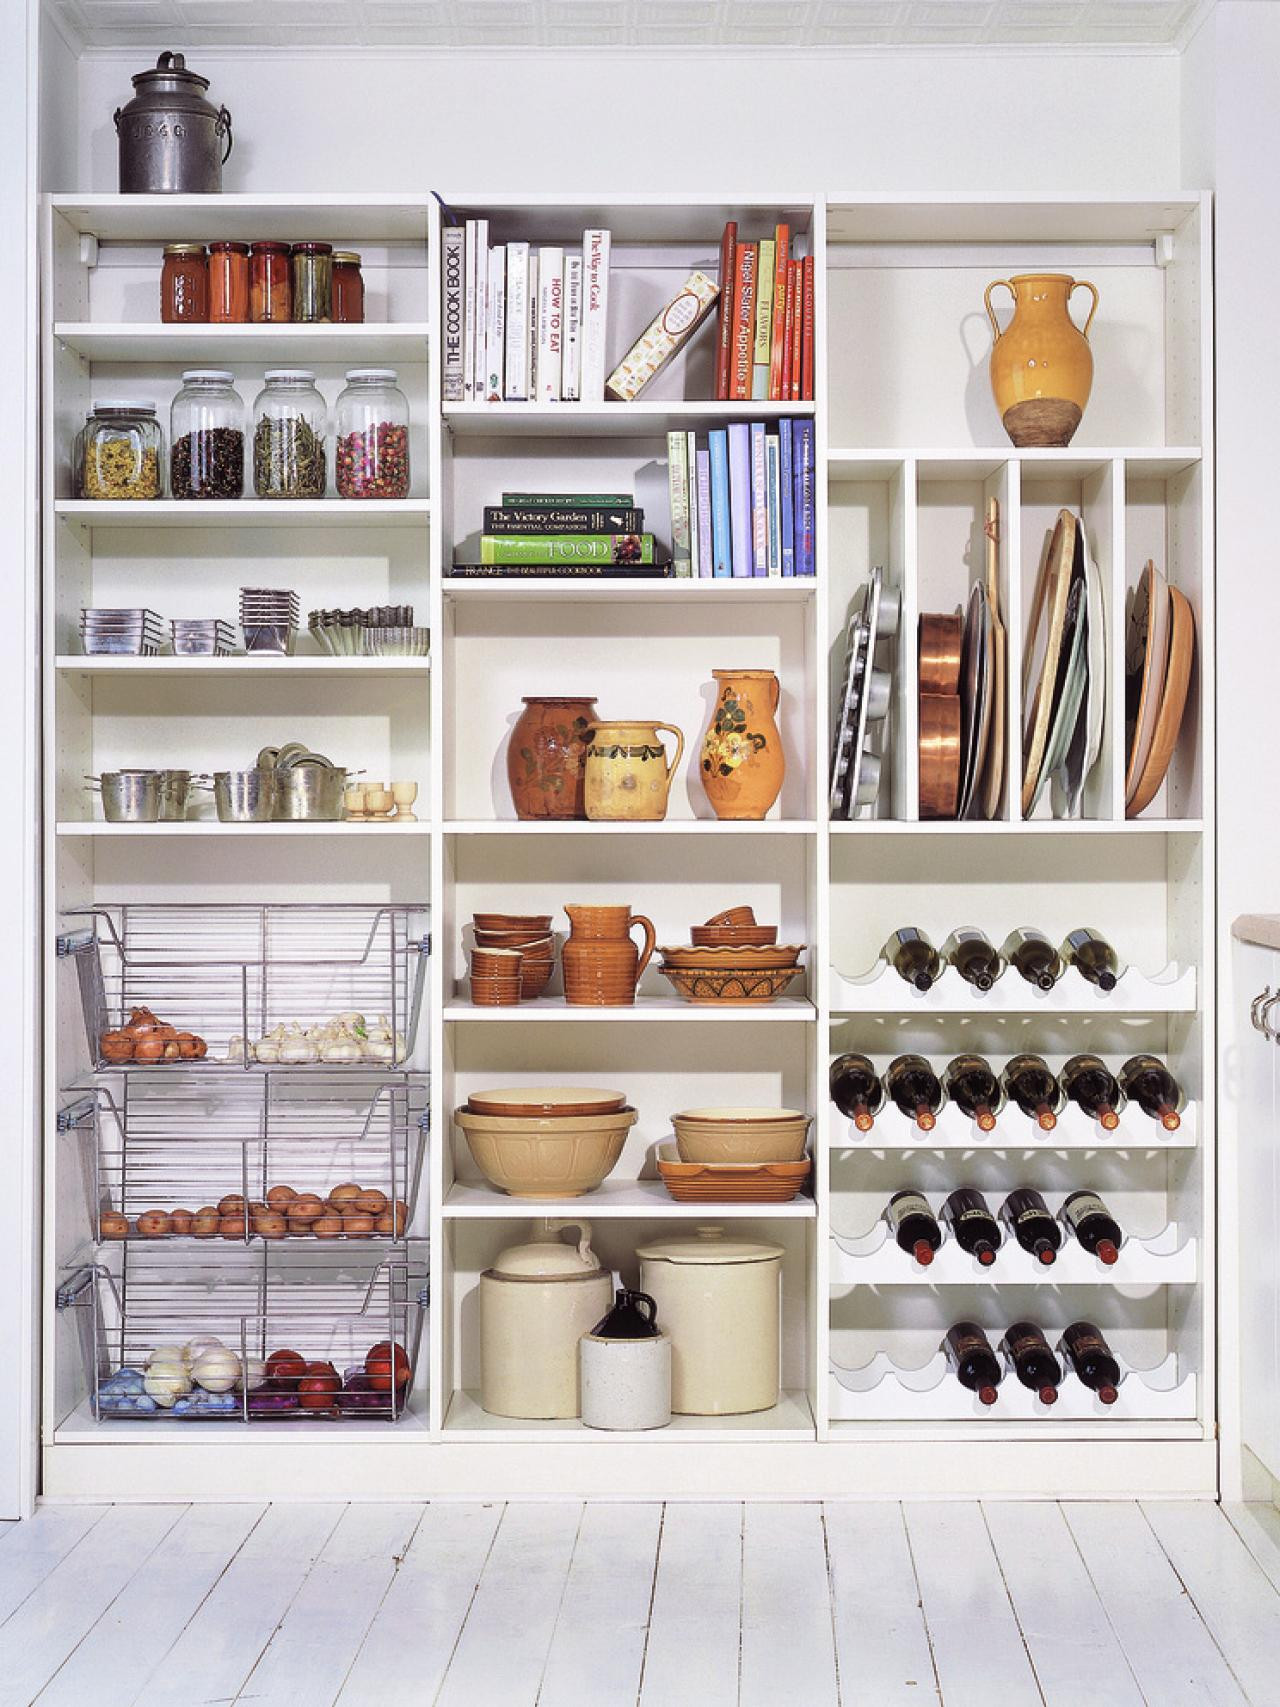 Best ideas about Pantry Shelving Ideas . Save or Pin 51 of Kitchen Pantry Designs & Ideas Now.